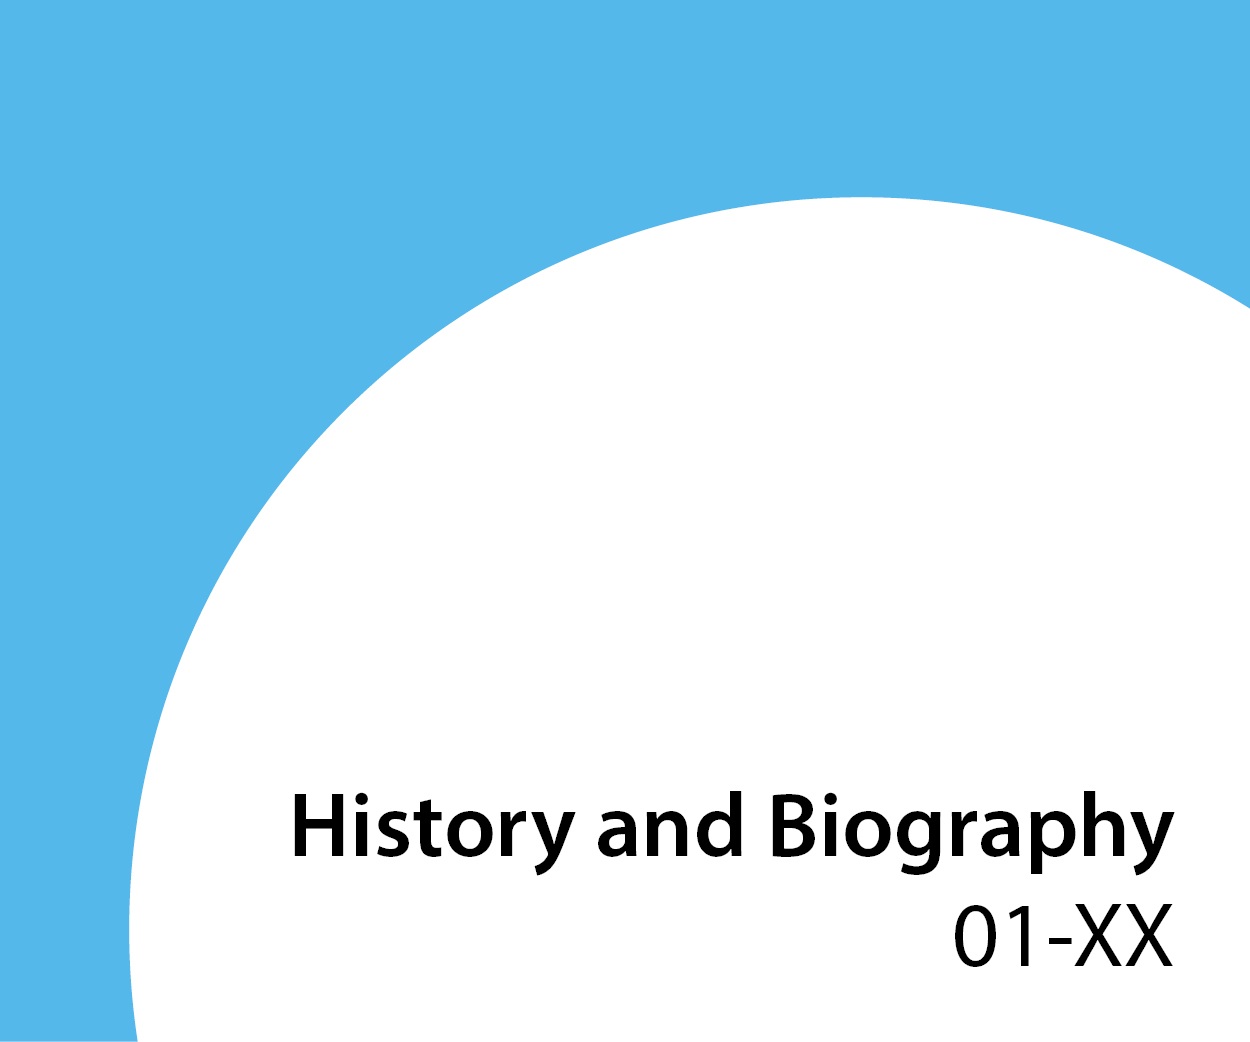 01-xx History and Biography